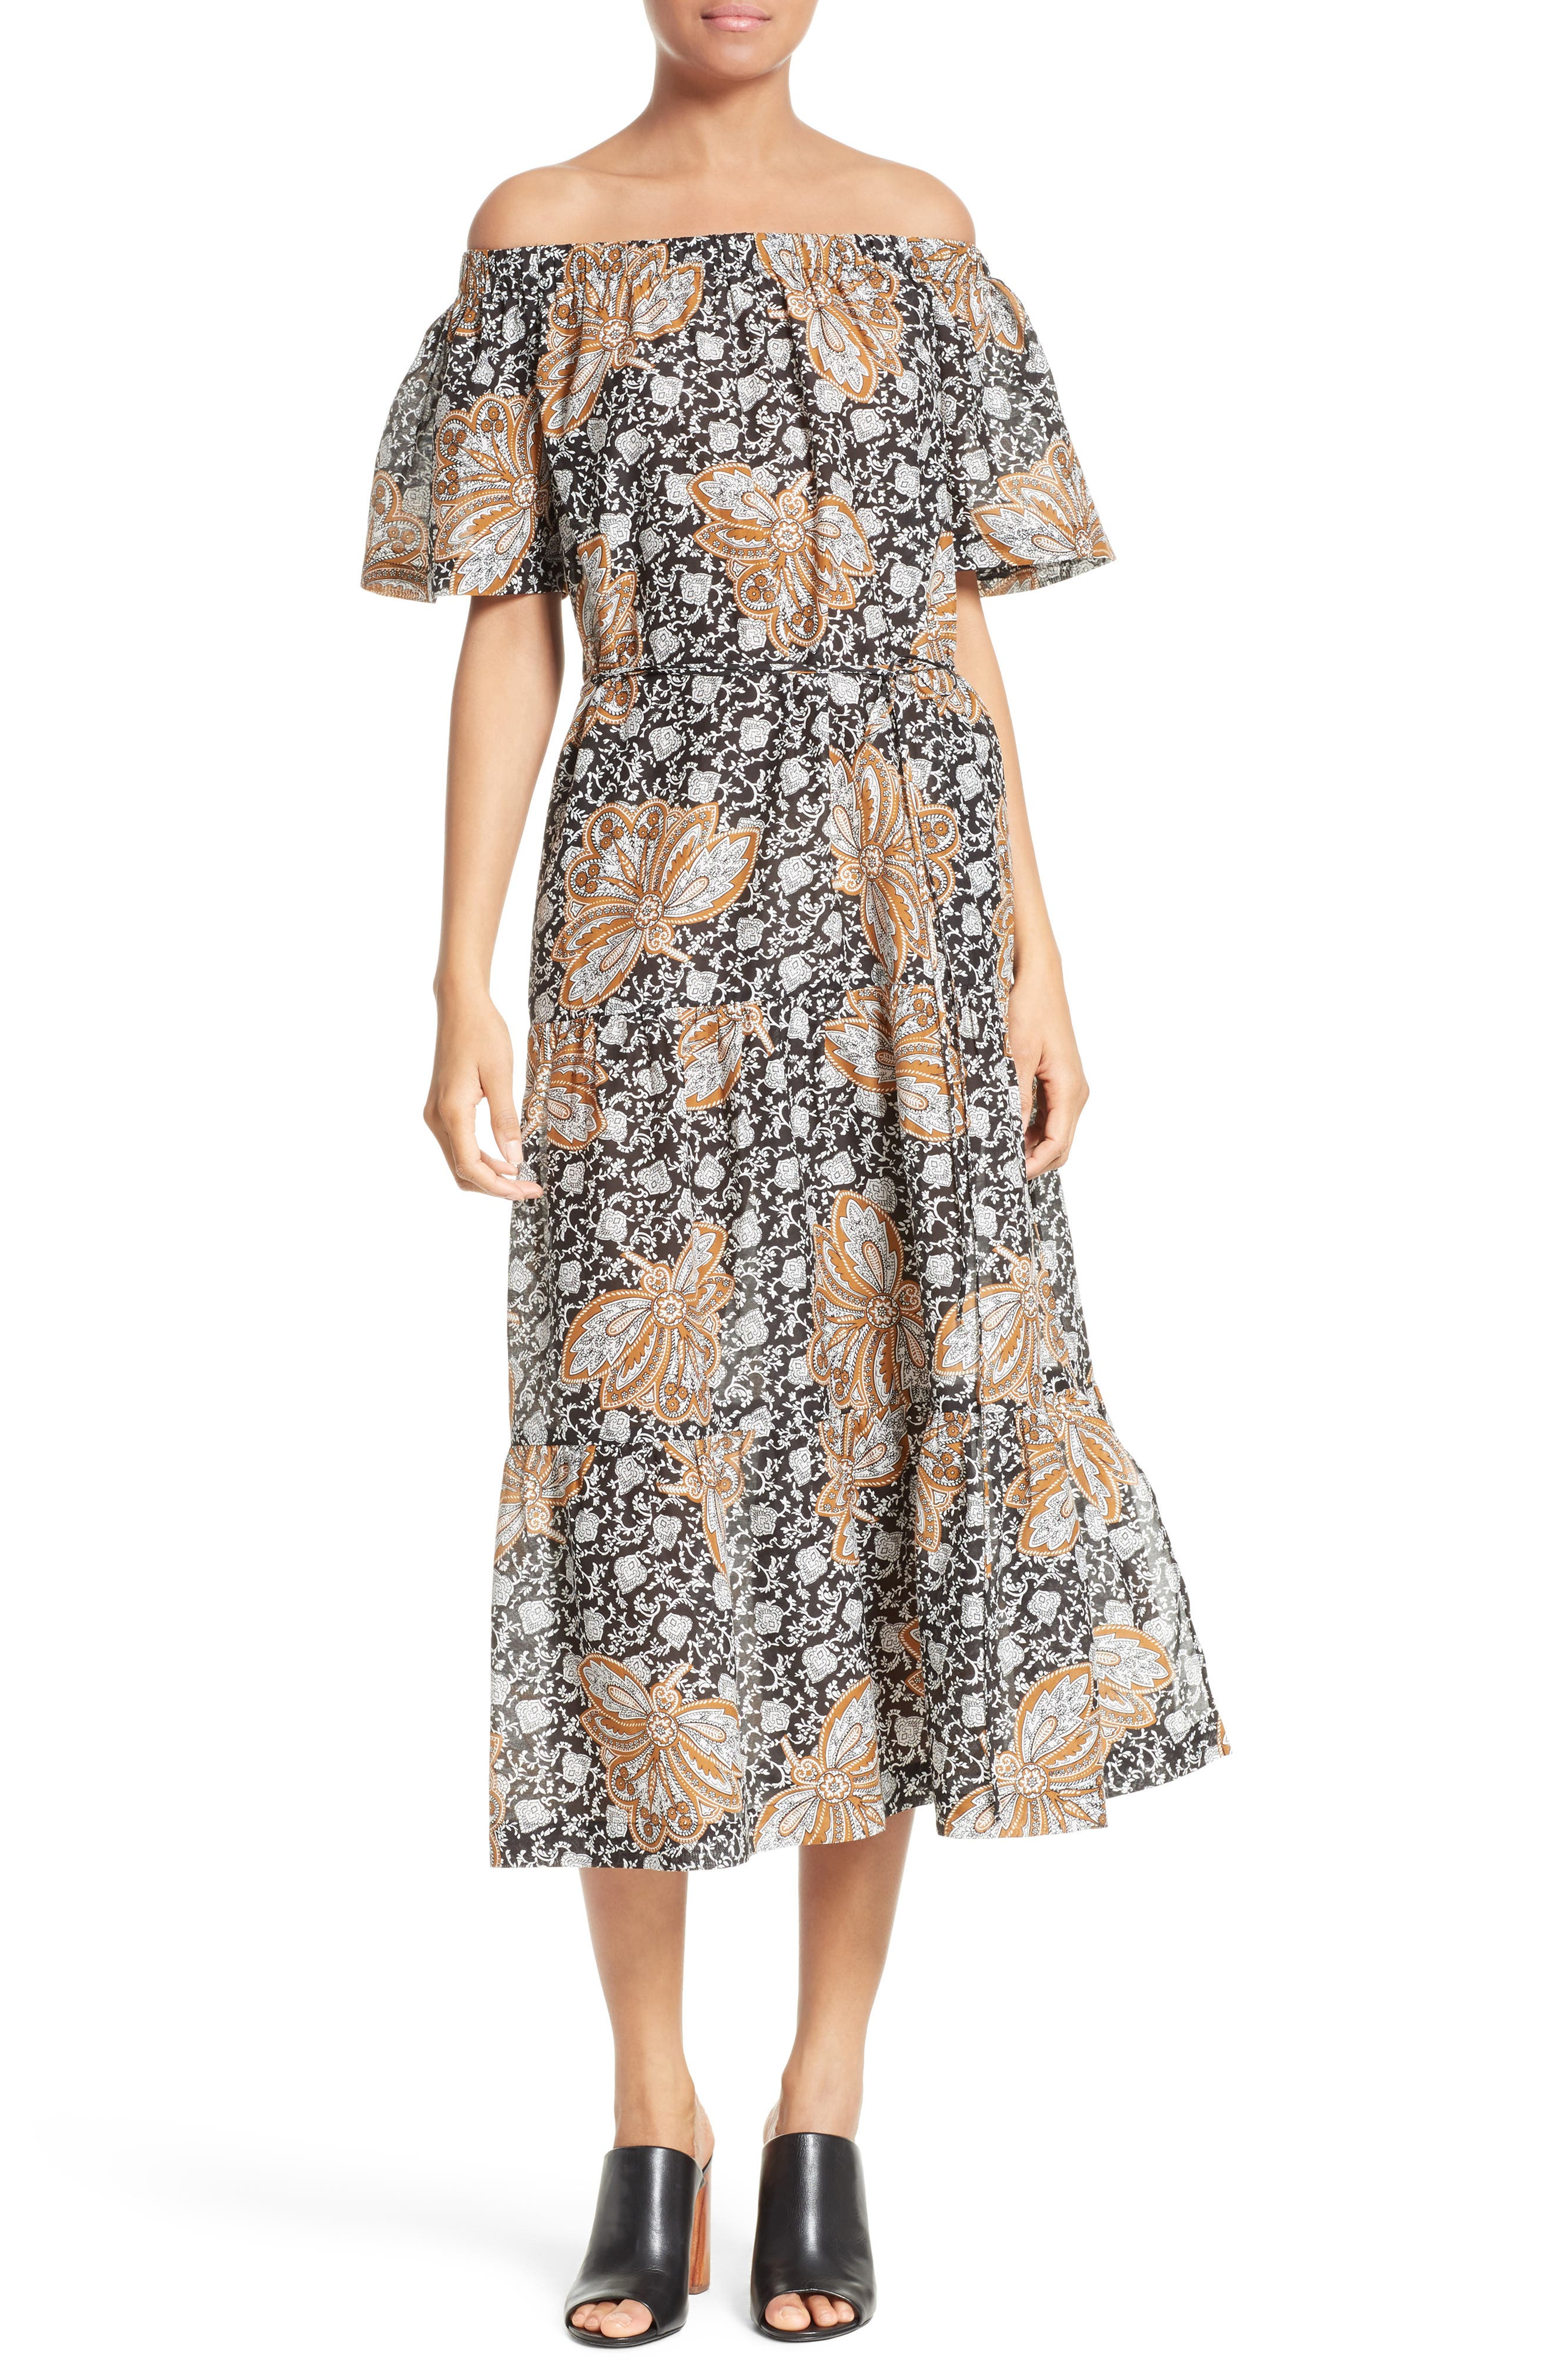 Alternate Image 1 Selected - A.L.C. Doris Print Off the Shoulder Dress